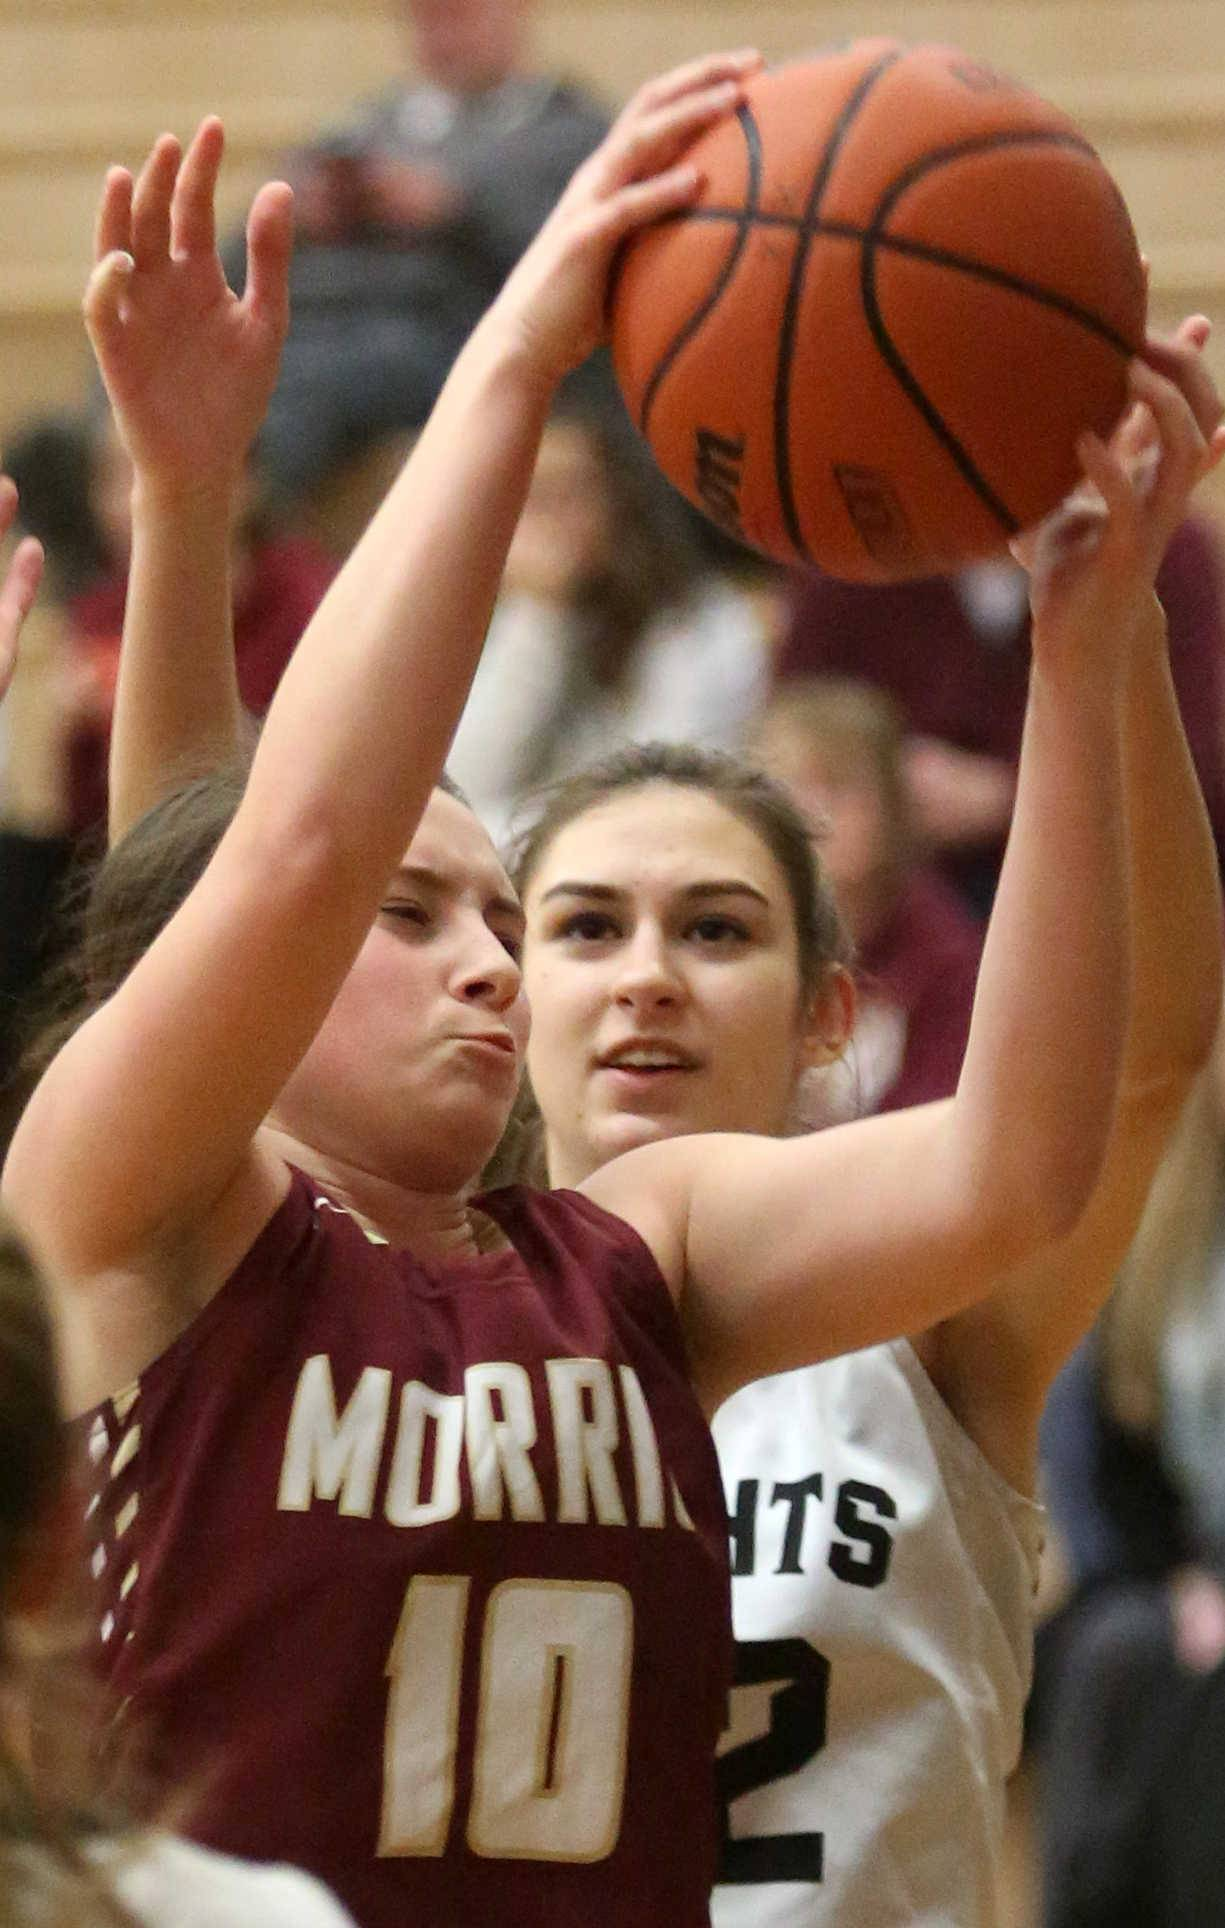 Morris' Paige Valentine snags a rebound in front of Kaneland's Grace Ringel during varsity basketball action at Kaneland Tuesday night.